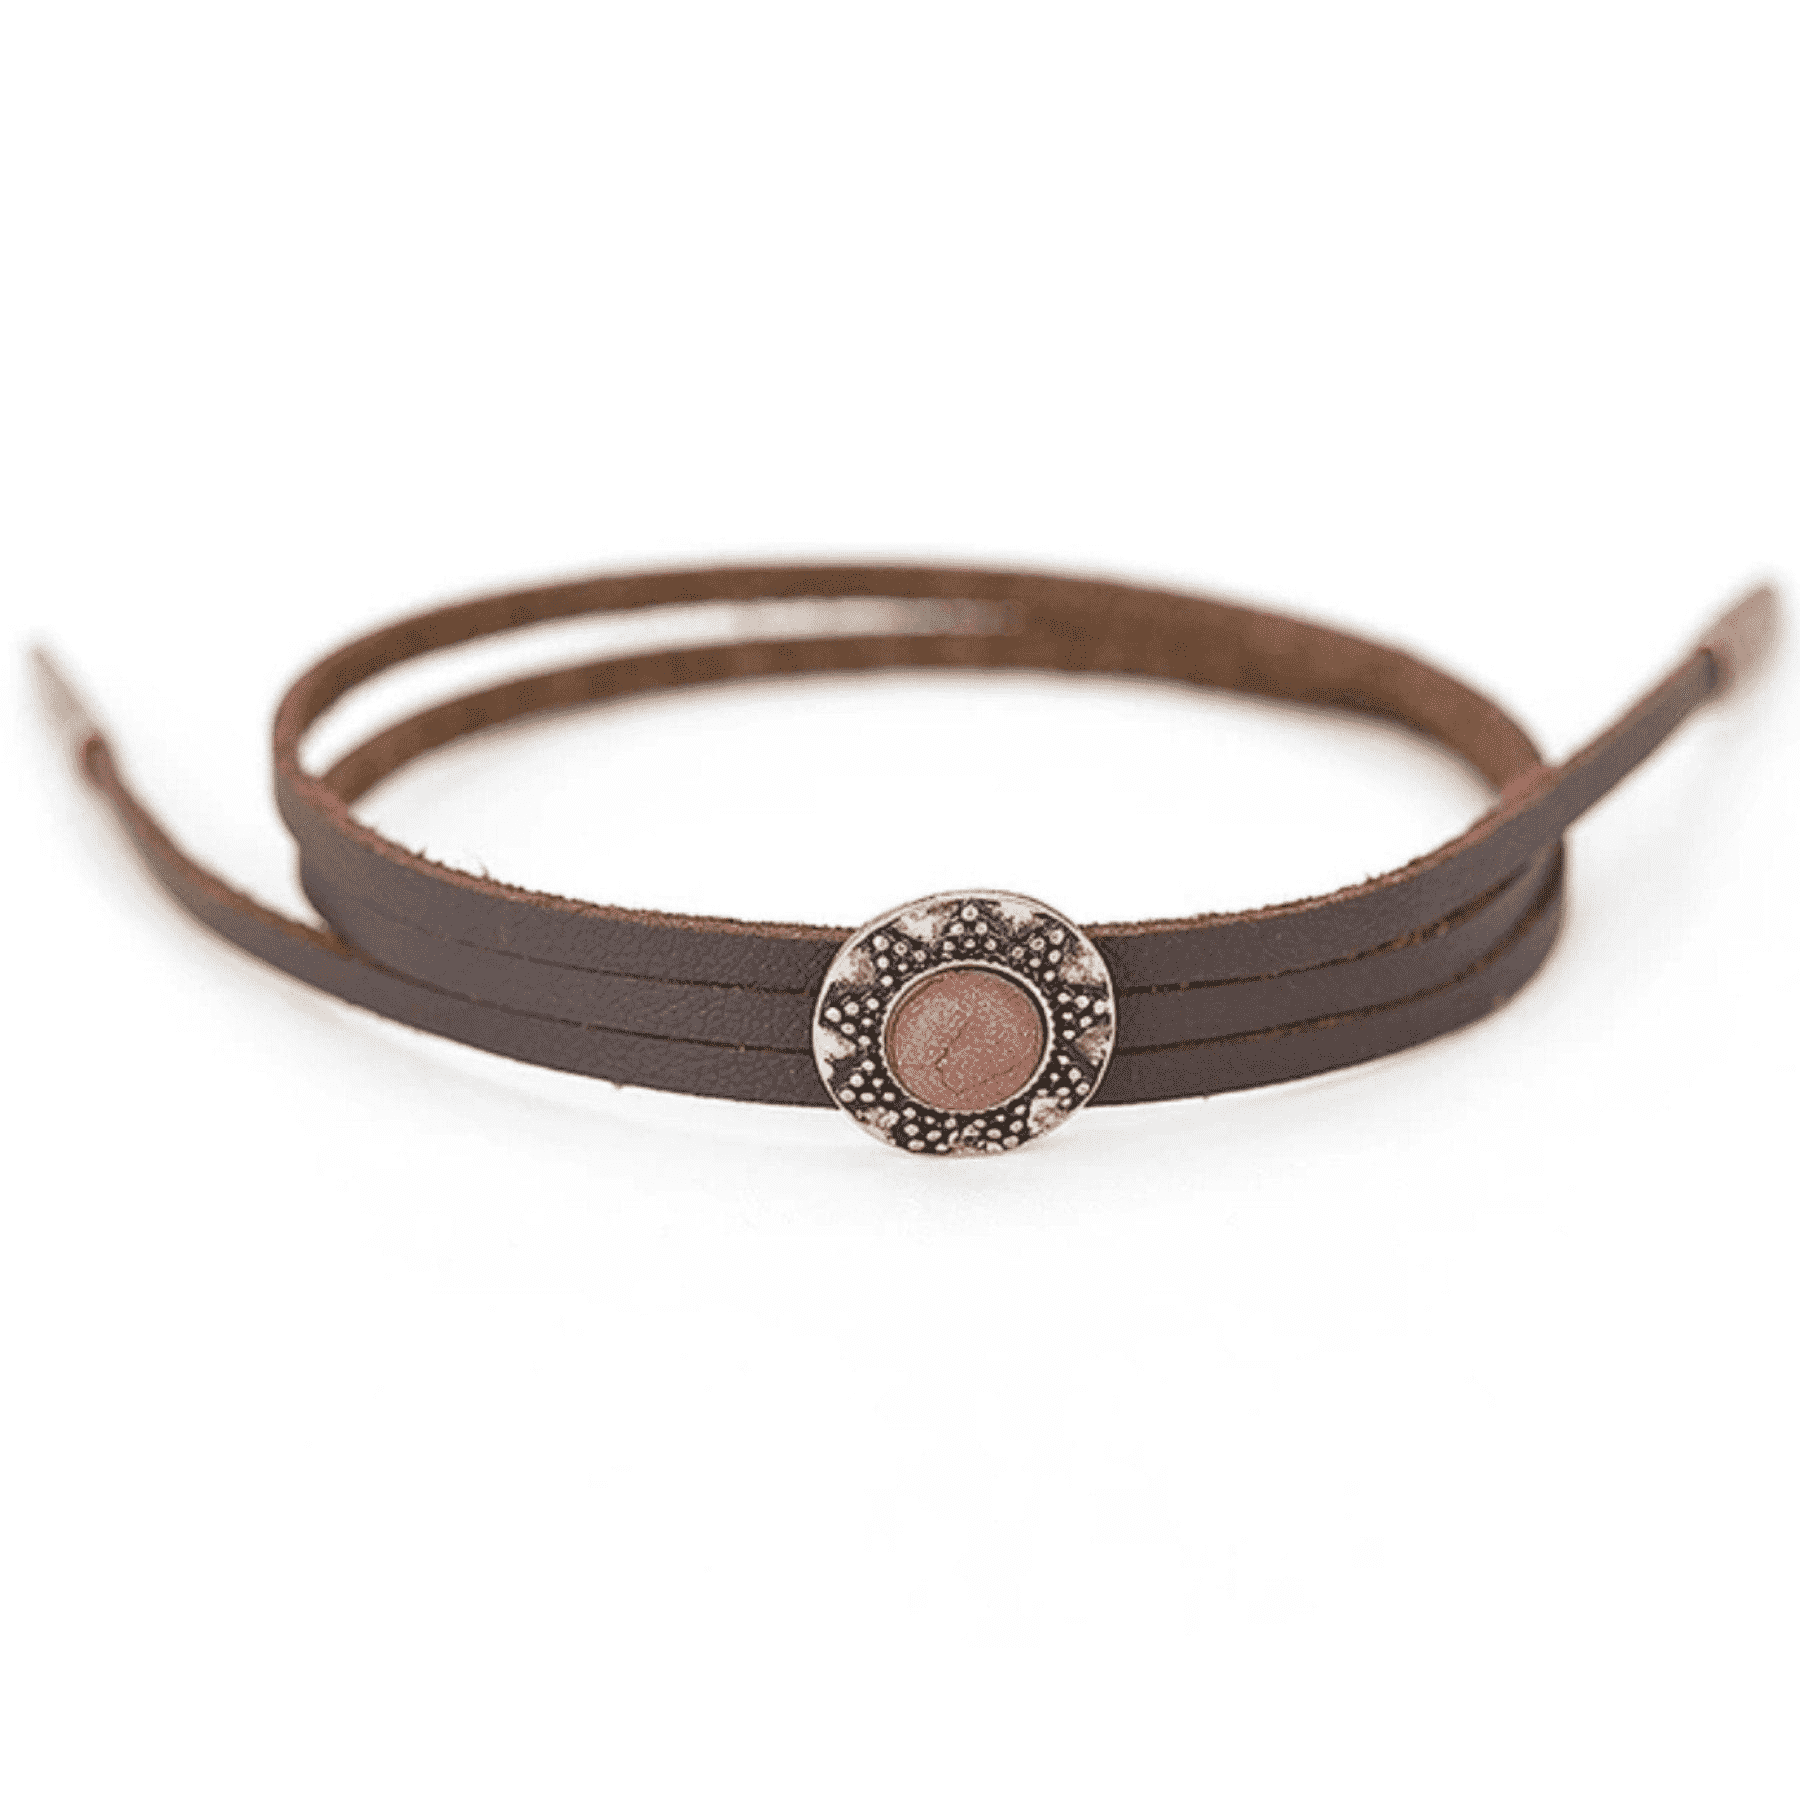 Boho Style Leather Charm Bracelet